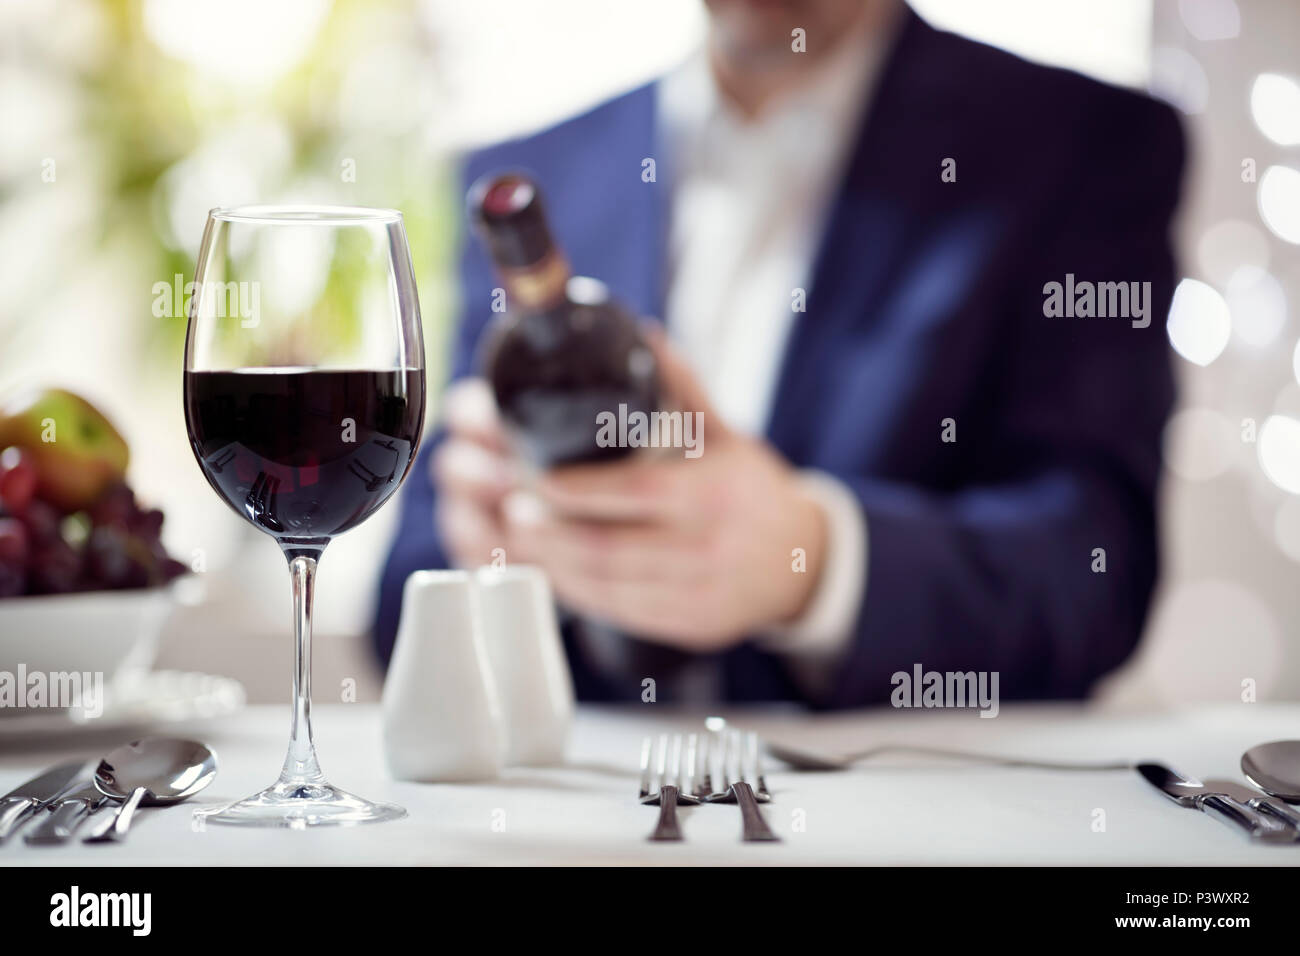 Businessman reading red wine bottle label in restaurant concept for business lunch or dinner meeting - Stock Image